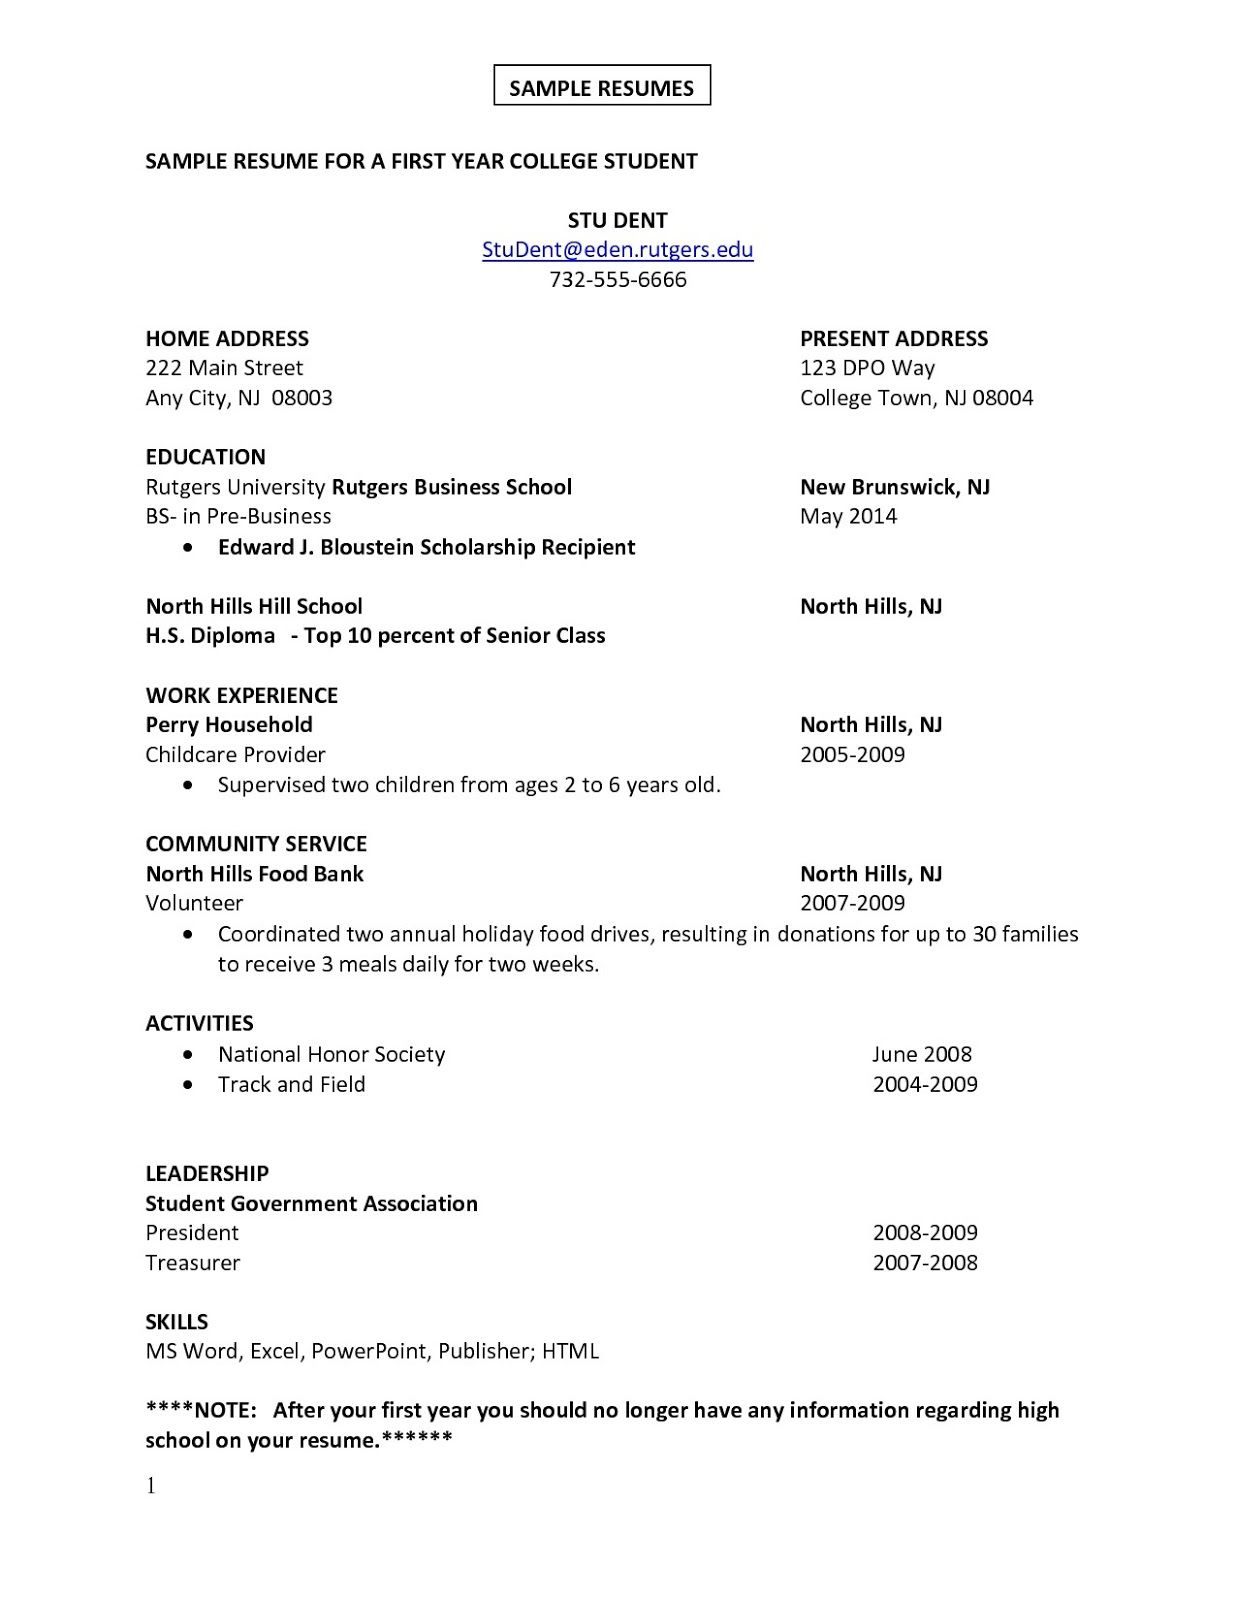 Sample Resume For College Student First Job Sample Resume  Sample Resumes  Sample Resumes